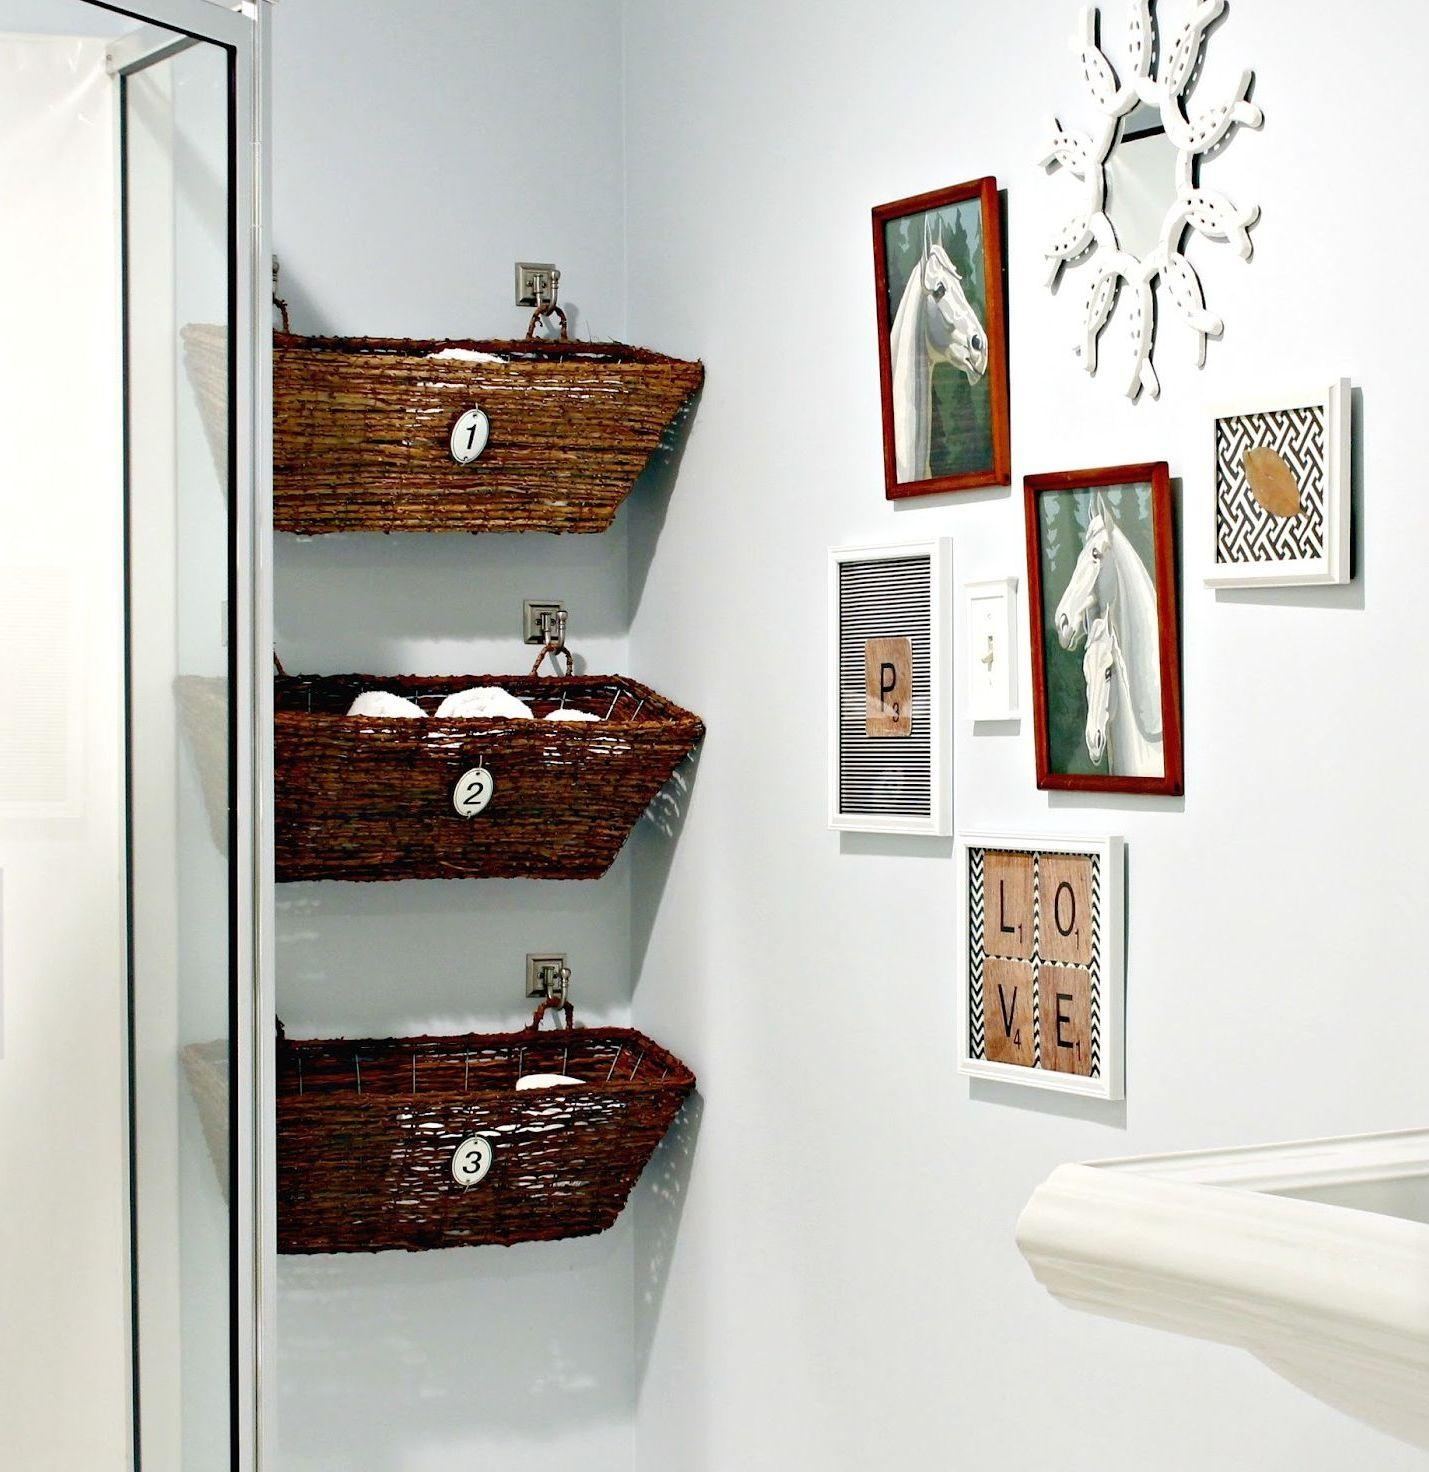 Bathroom Ideas: Small Framed Bathroom Wall Art Near Three Hanging Regarding Art For Bathrooms Walls (View 20 of 20)